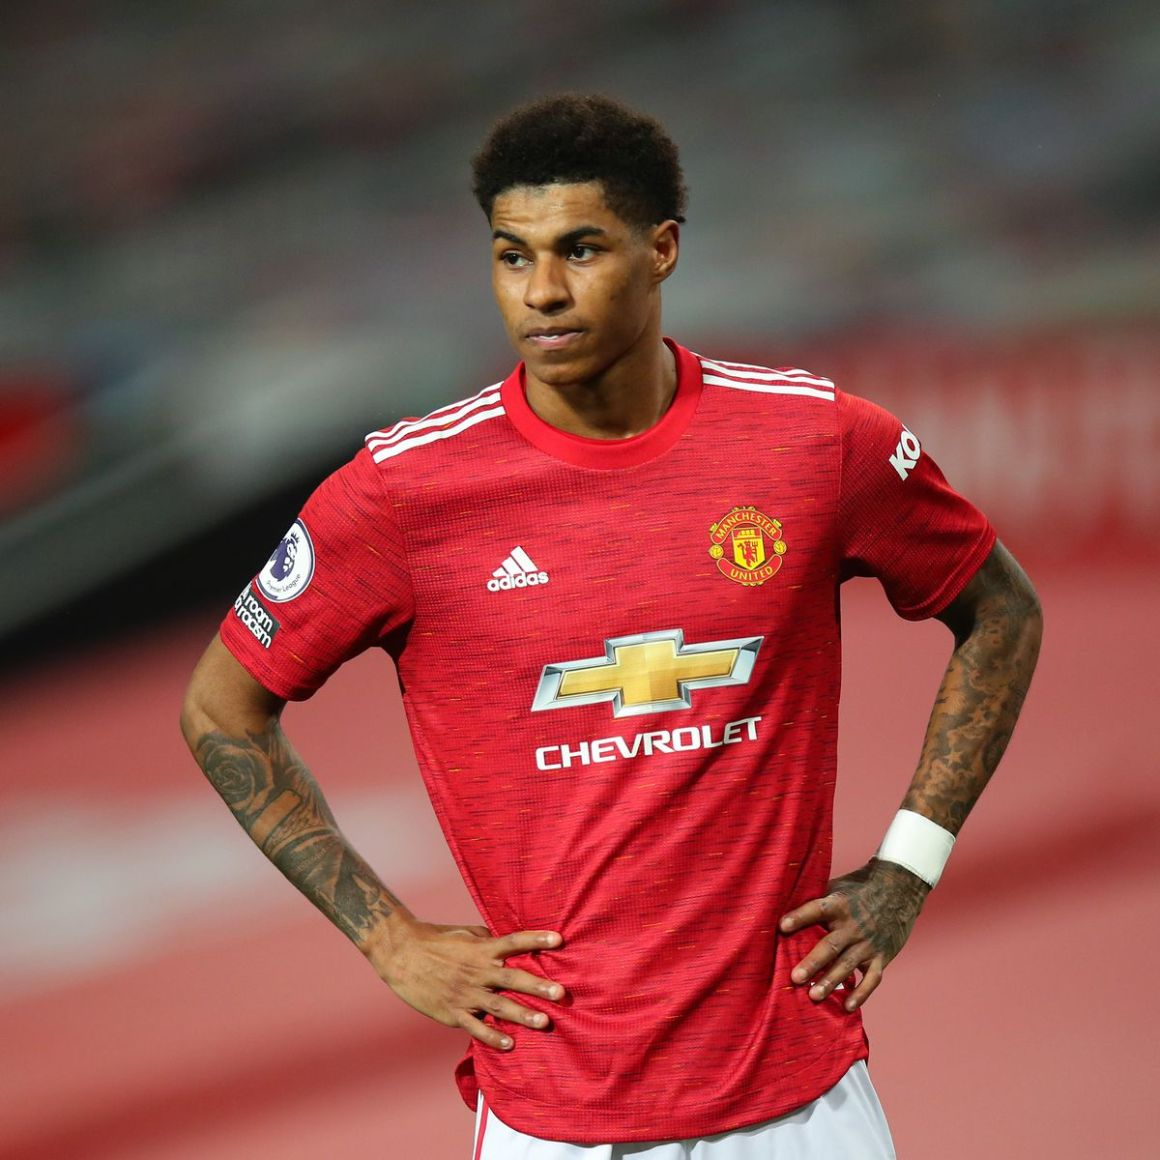 Marcus Rashford deserves better than current debate about Manchester United  form - Dominic Booth - Manchester Evening News